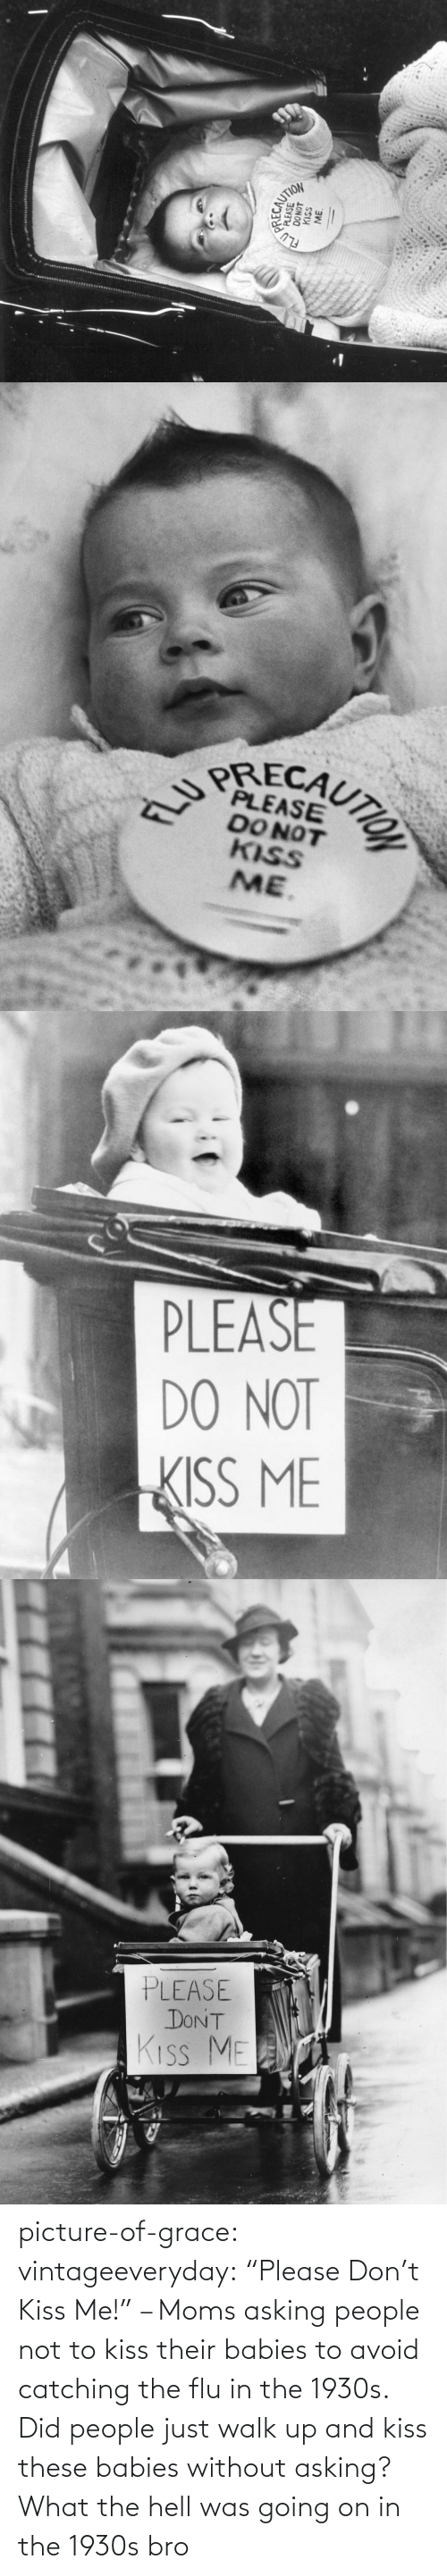 "Target: picture-of-grace:  vintageeveryday: ""Please Don't Kiss Me!"" – Moms asking people not to kiss their babies to avoid catching the flu in the 1930s.   Did people just walk up and kiss these babies without asking? What the hell was going on in the 1930s bro"